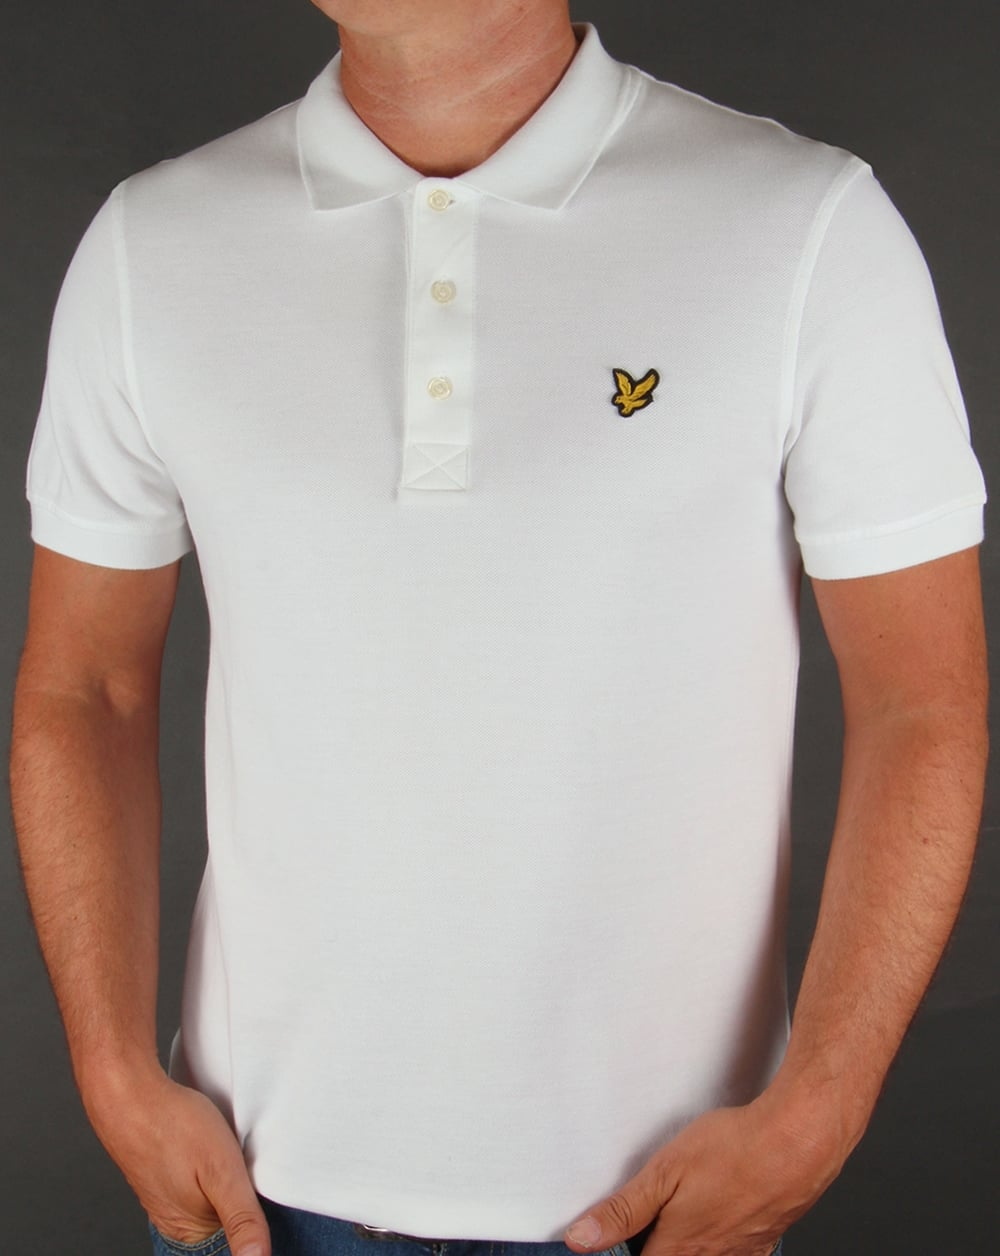 lyle and scott polo shirt white pique neck cotton mens. Black Bedroom Furniture Sets. Home Design Ideas